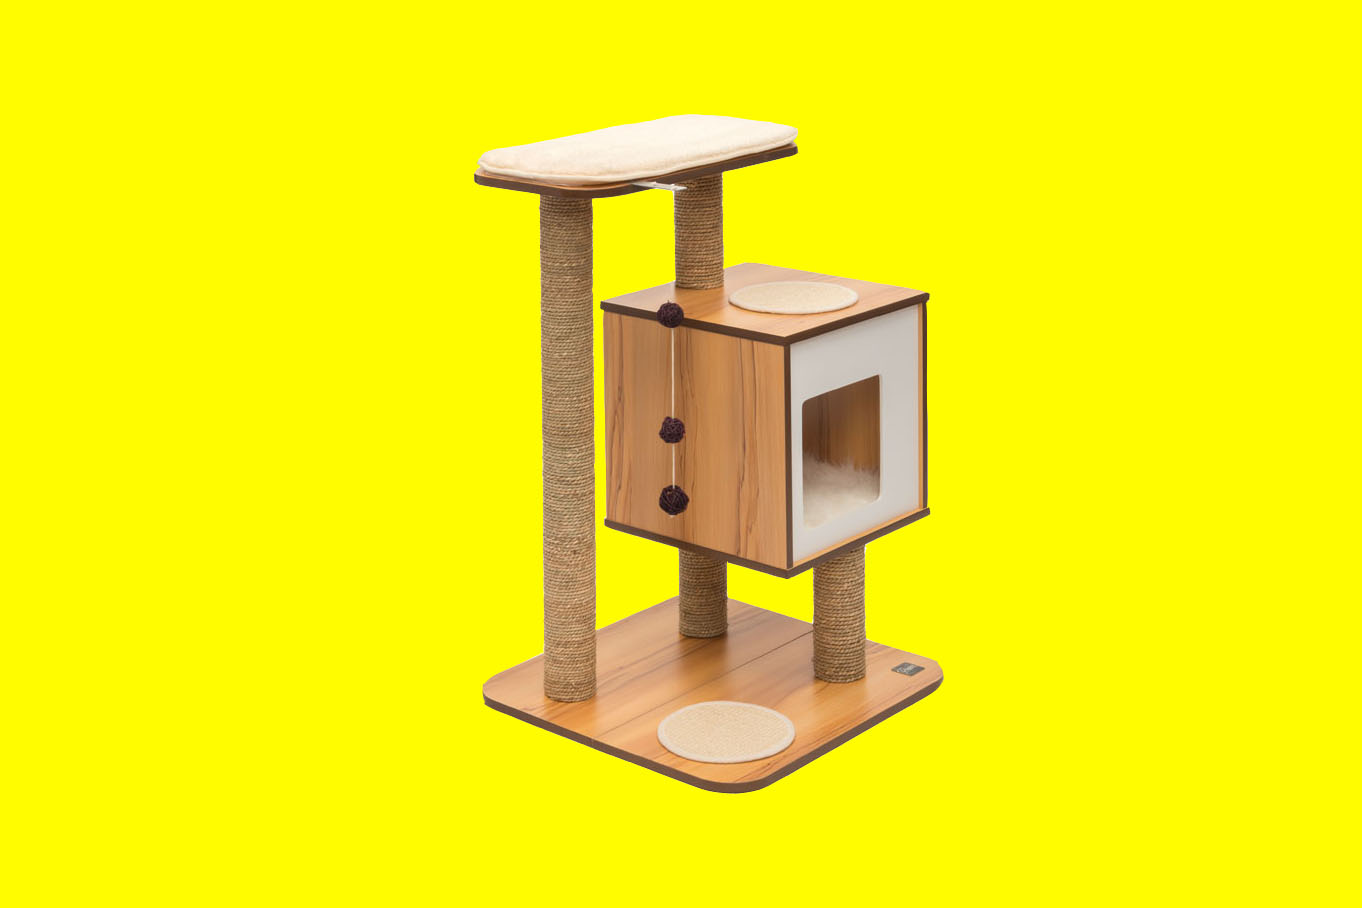 modern cat furniture with cubed cubby and elevated platform.